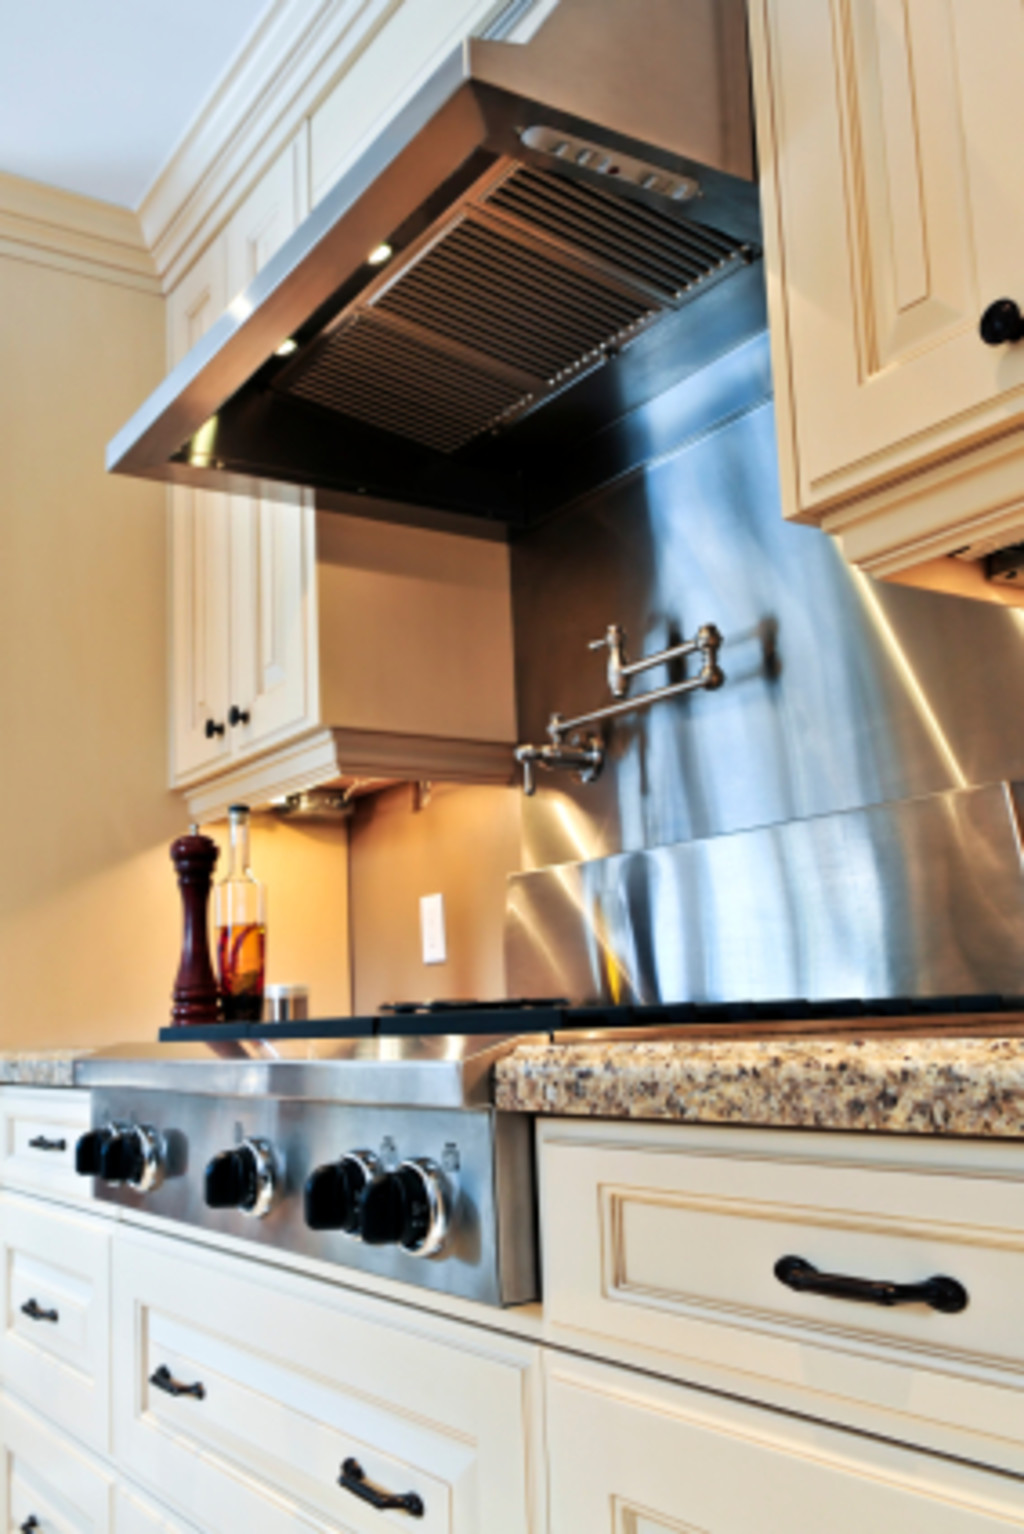 Joel Norris Appliance Repair - Oven